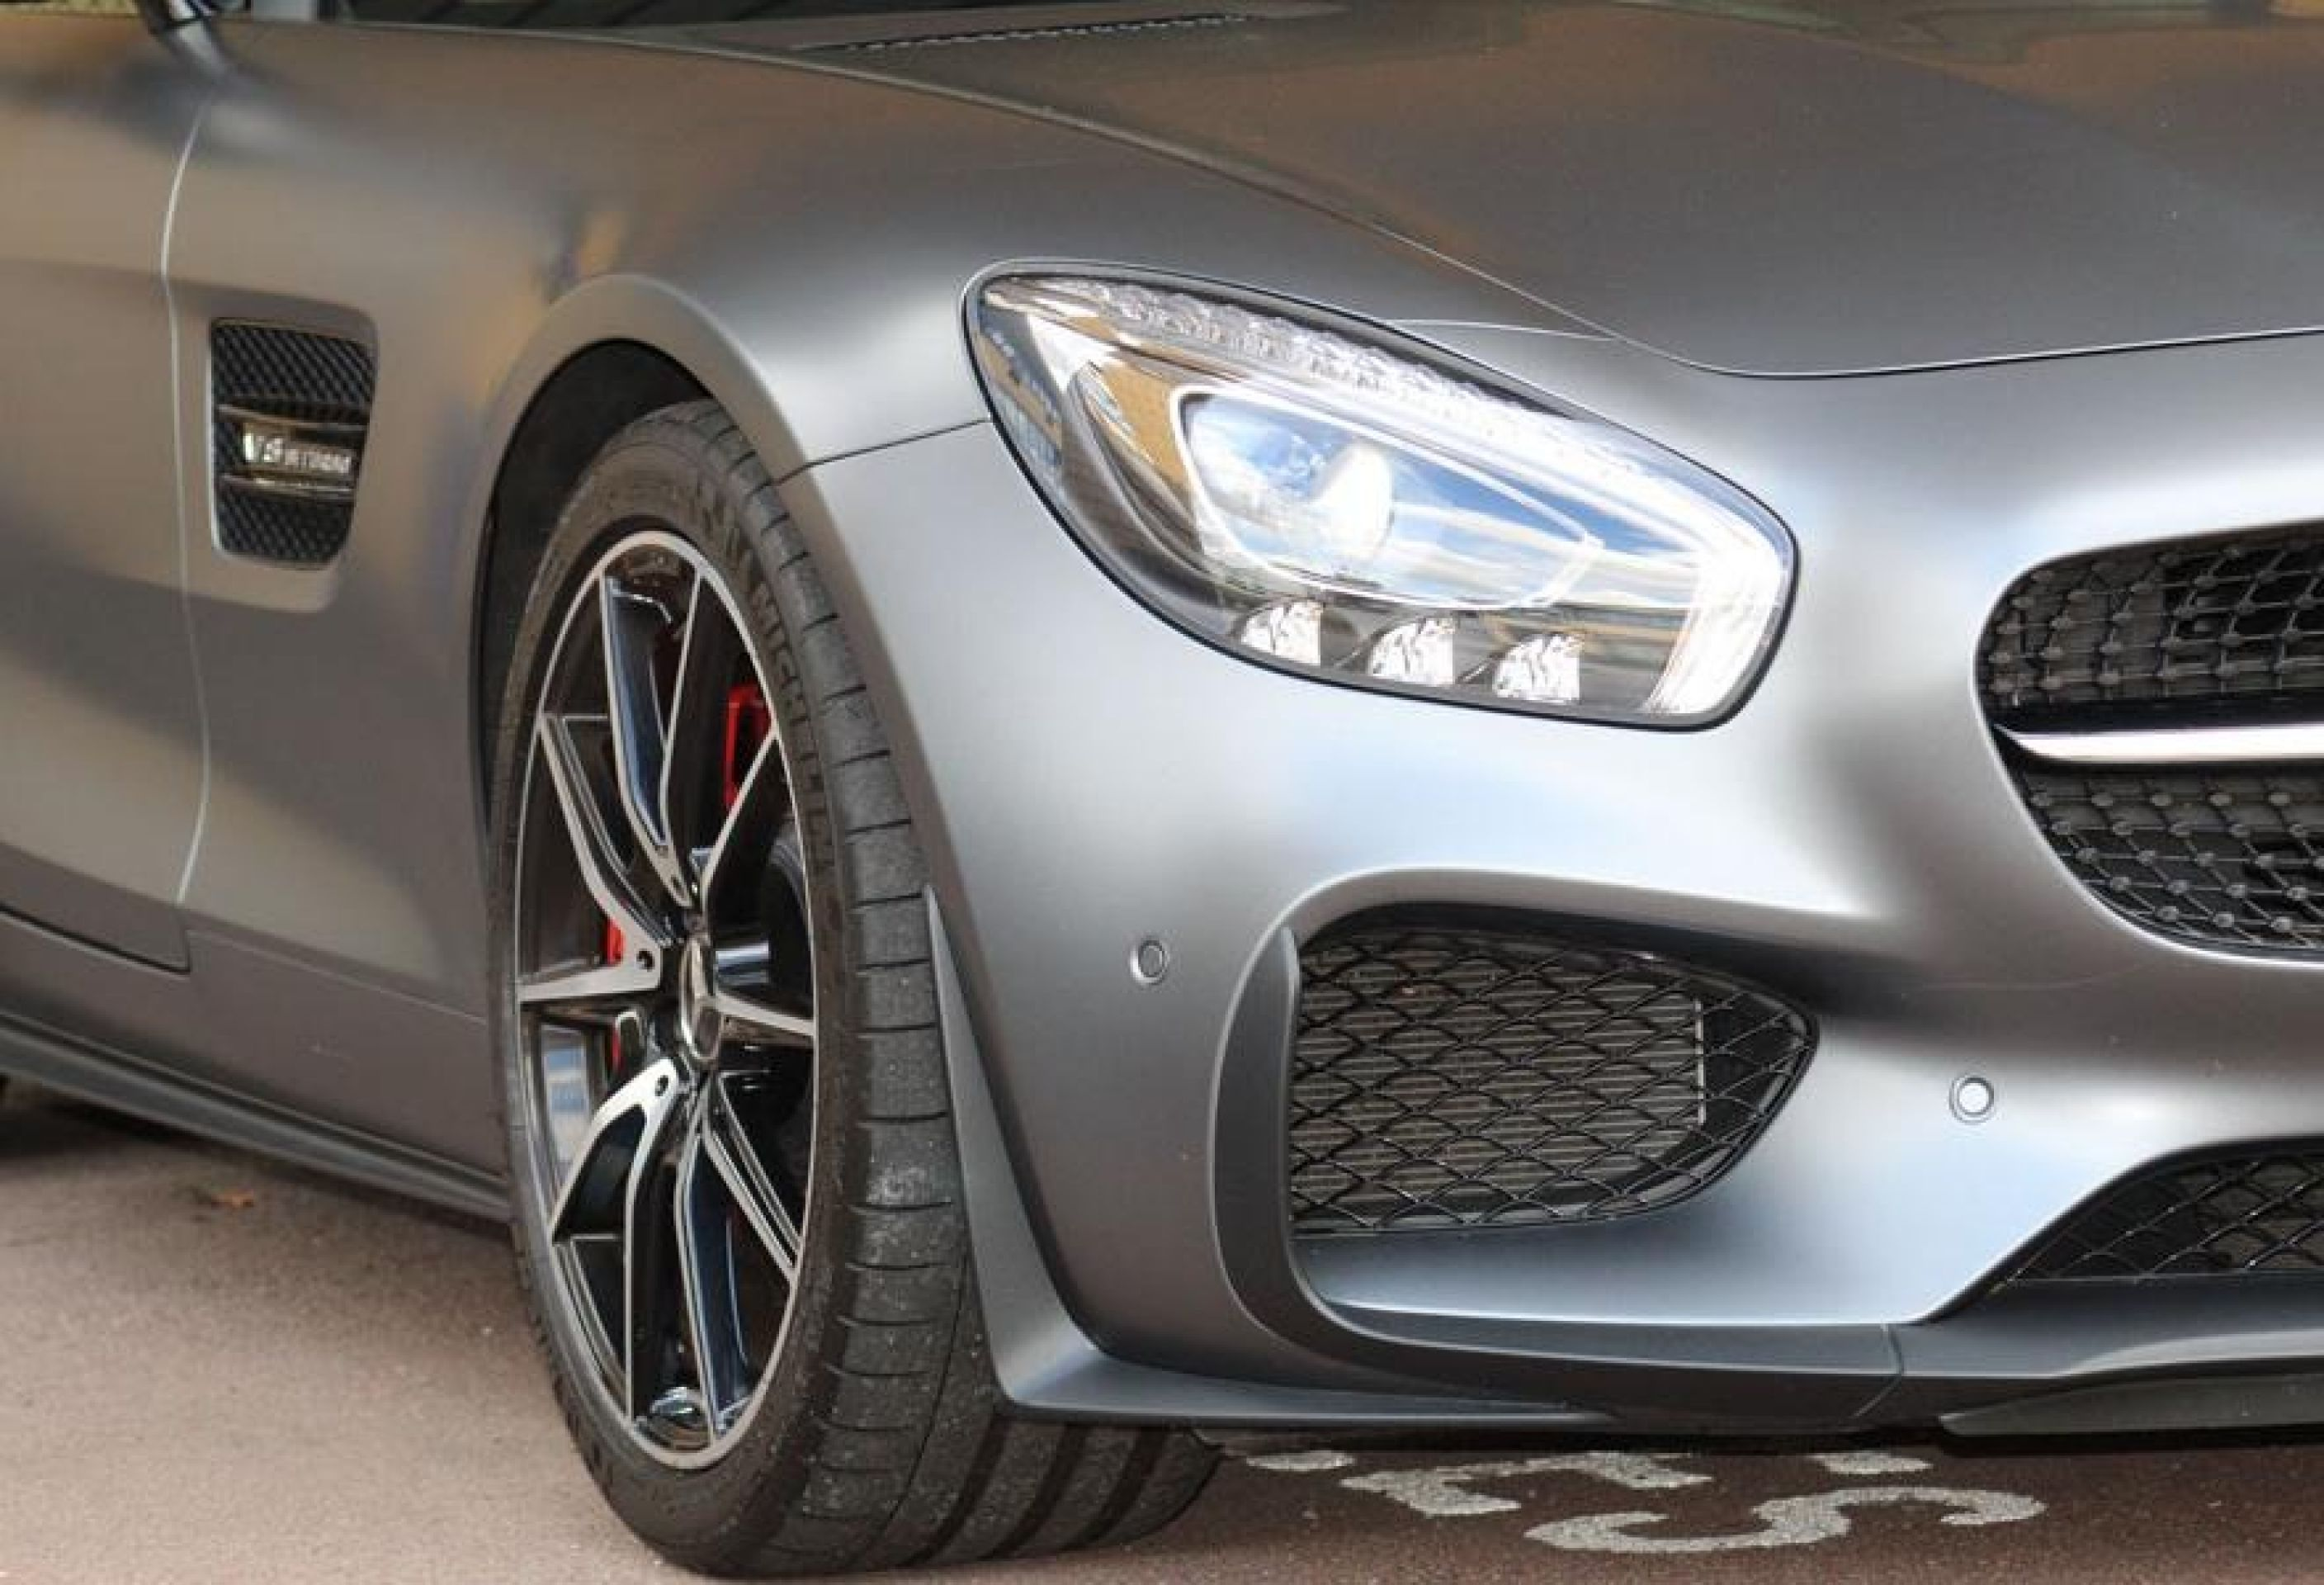 MERCEDES-BENZ AMG GTS EDITION 1 RHD